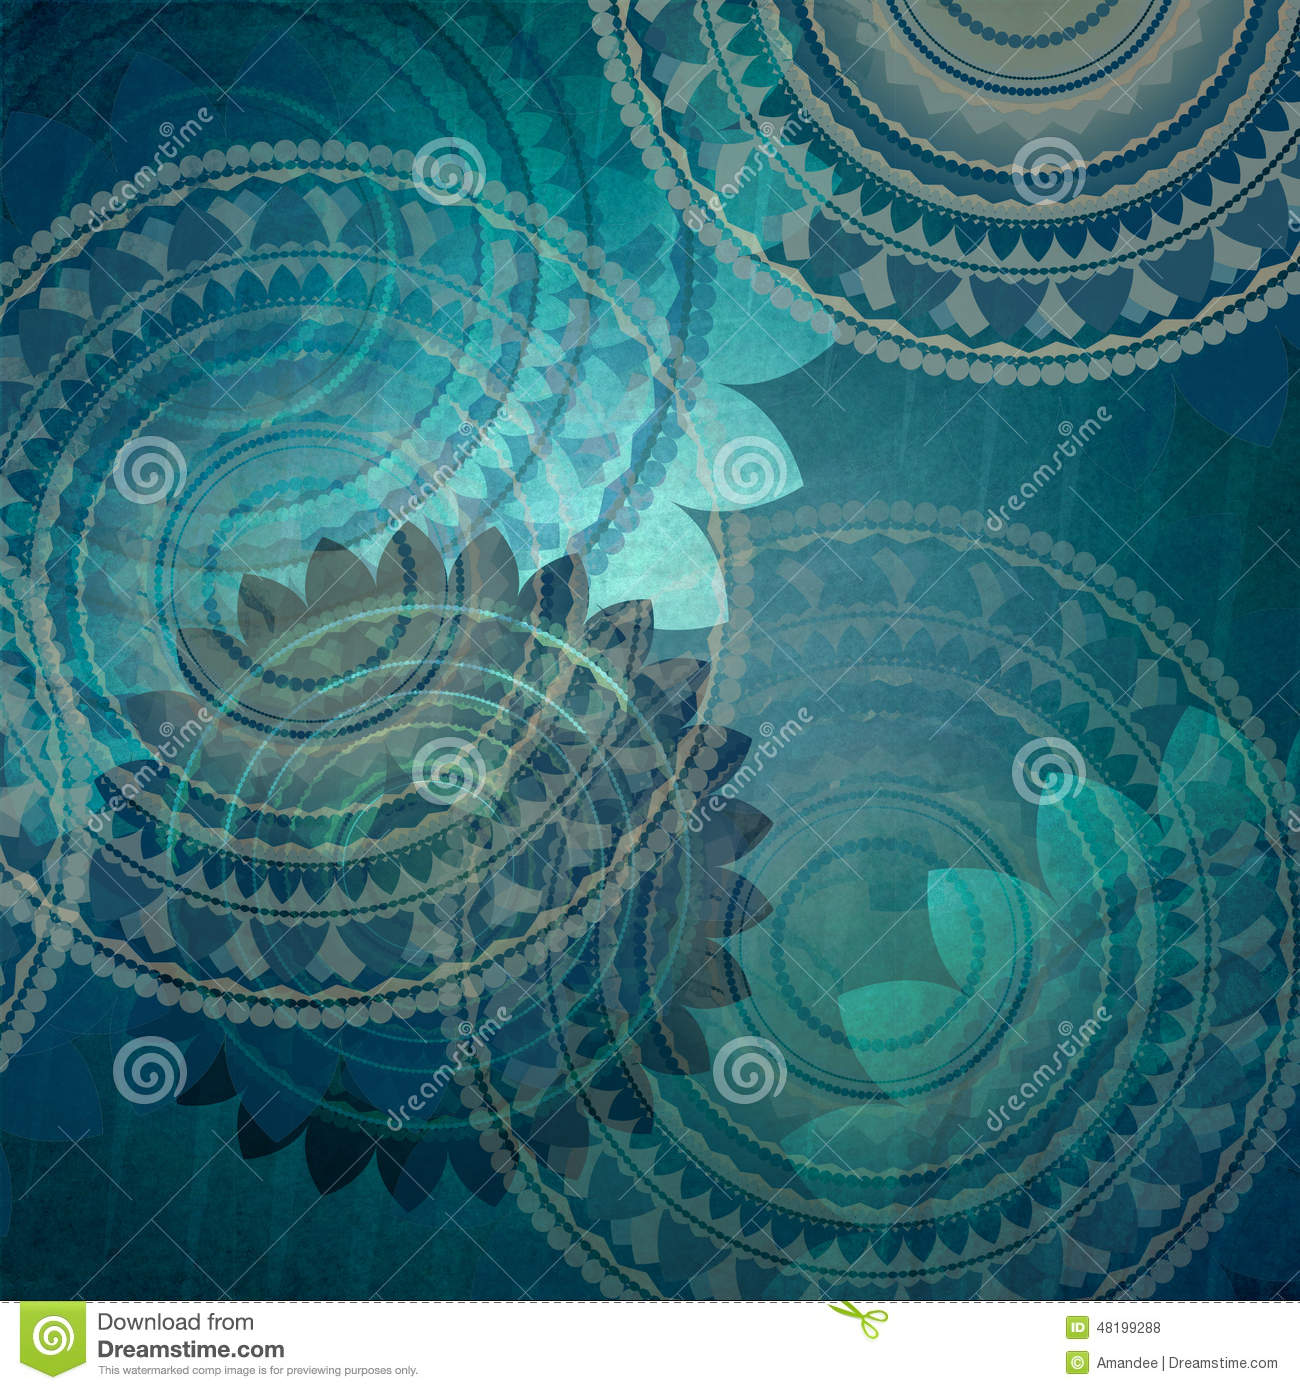 Elegant blue background design with fancy seal flower shapes in abstract random pattern